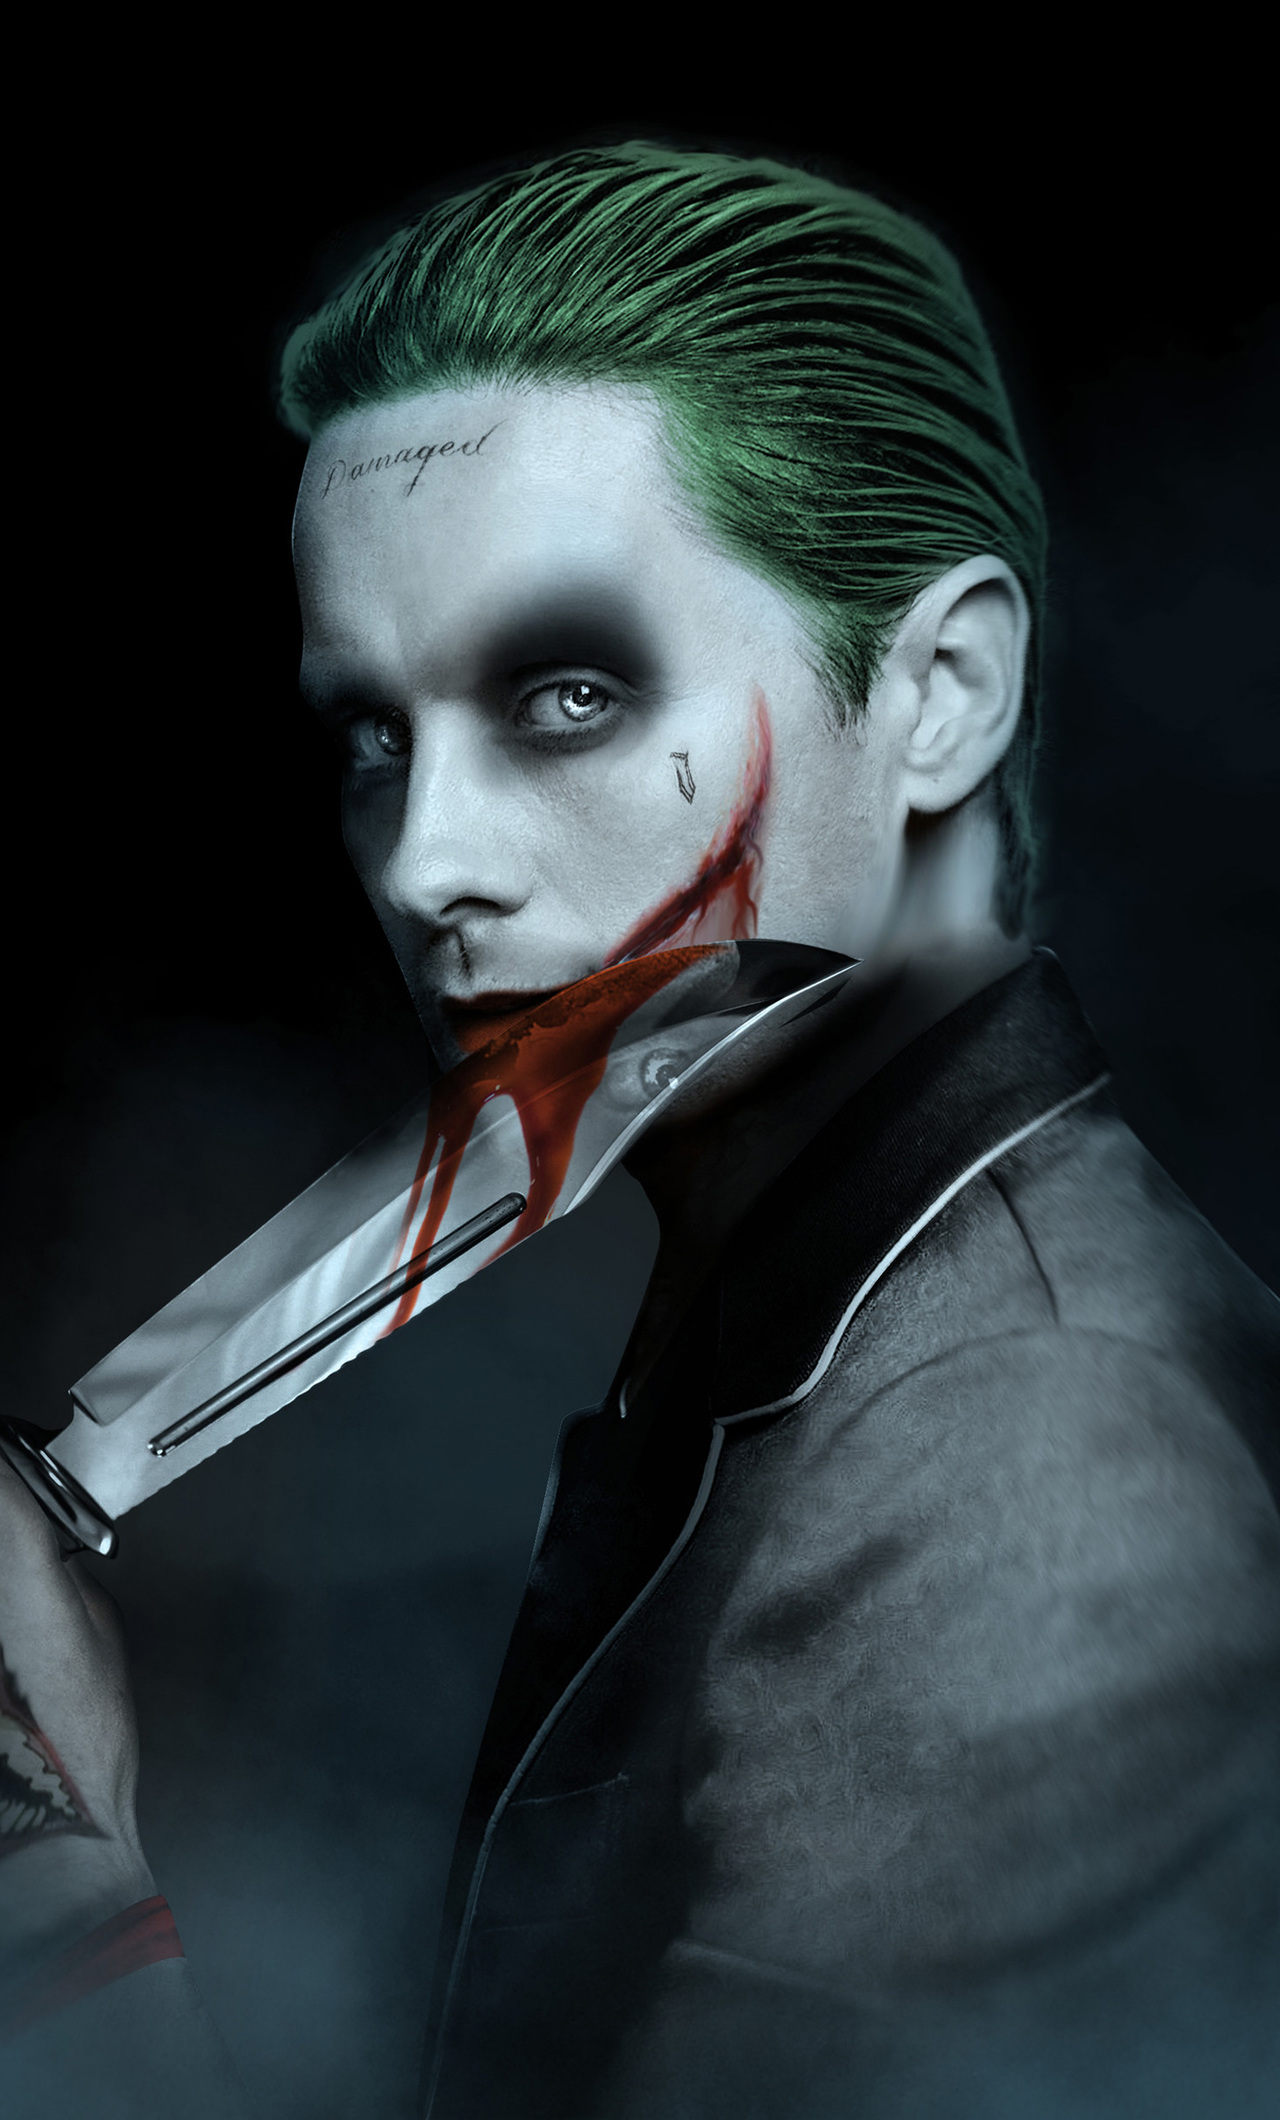 1280x2120 jared leto joker artwork iphone 6 hd 4k. Black Bedroom Furniture Sets. Home Design Ideas